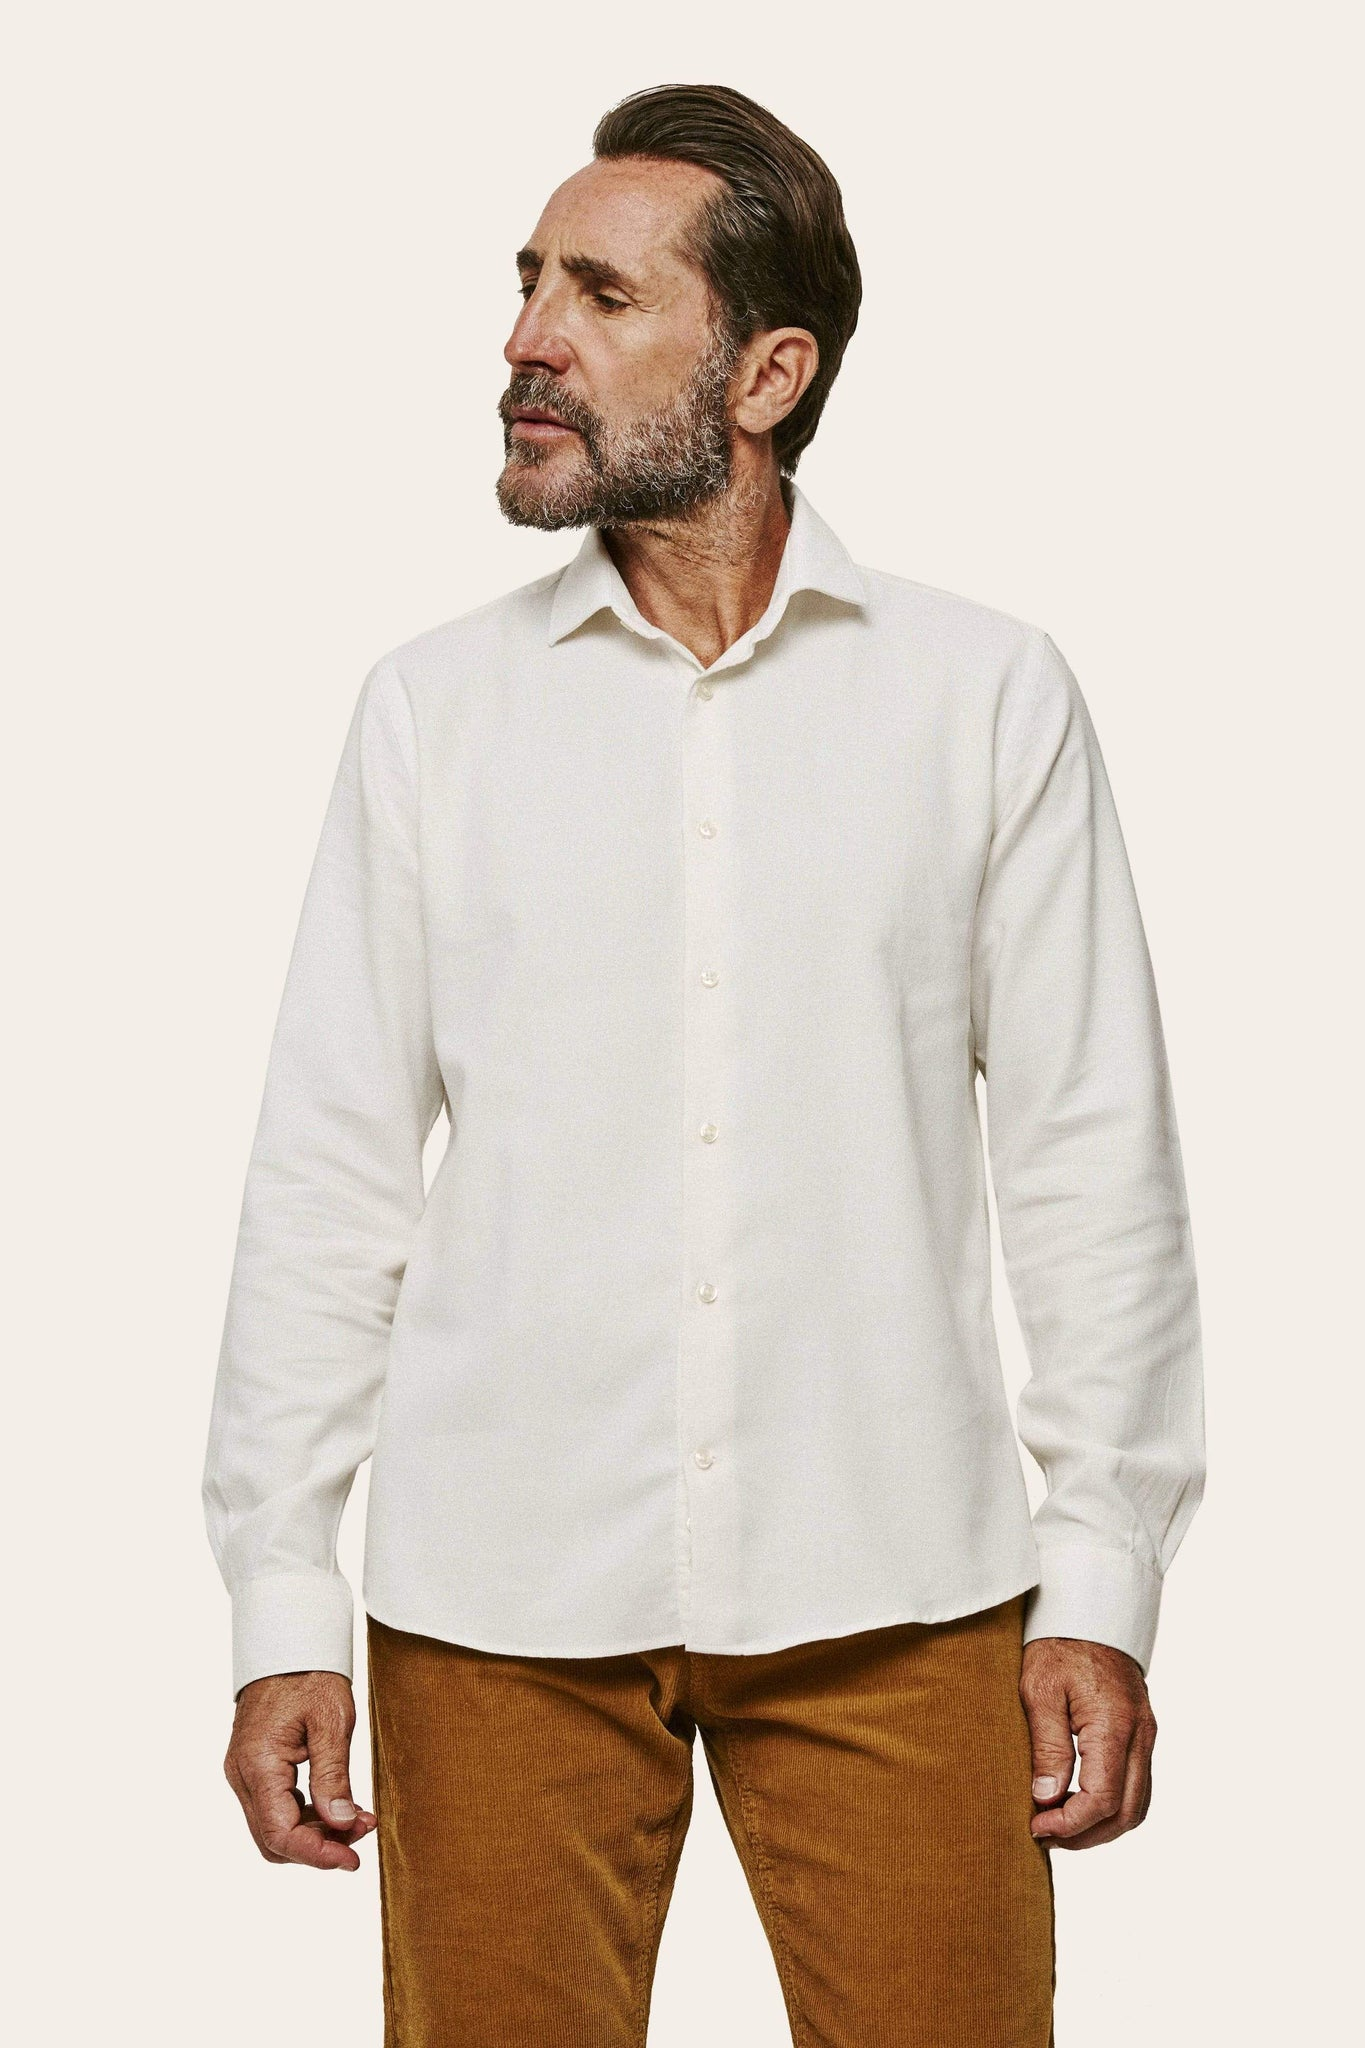 Chemise Troop - Blanc CHEMISE Lafaurie H20